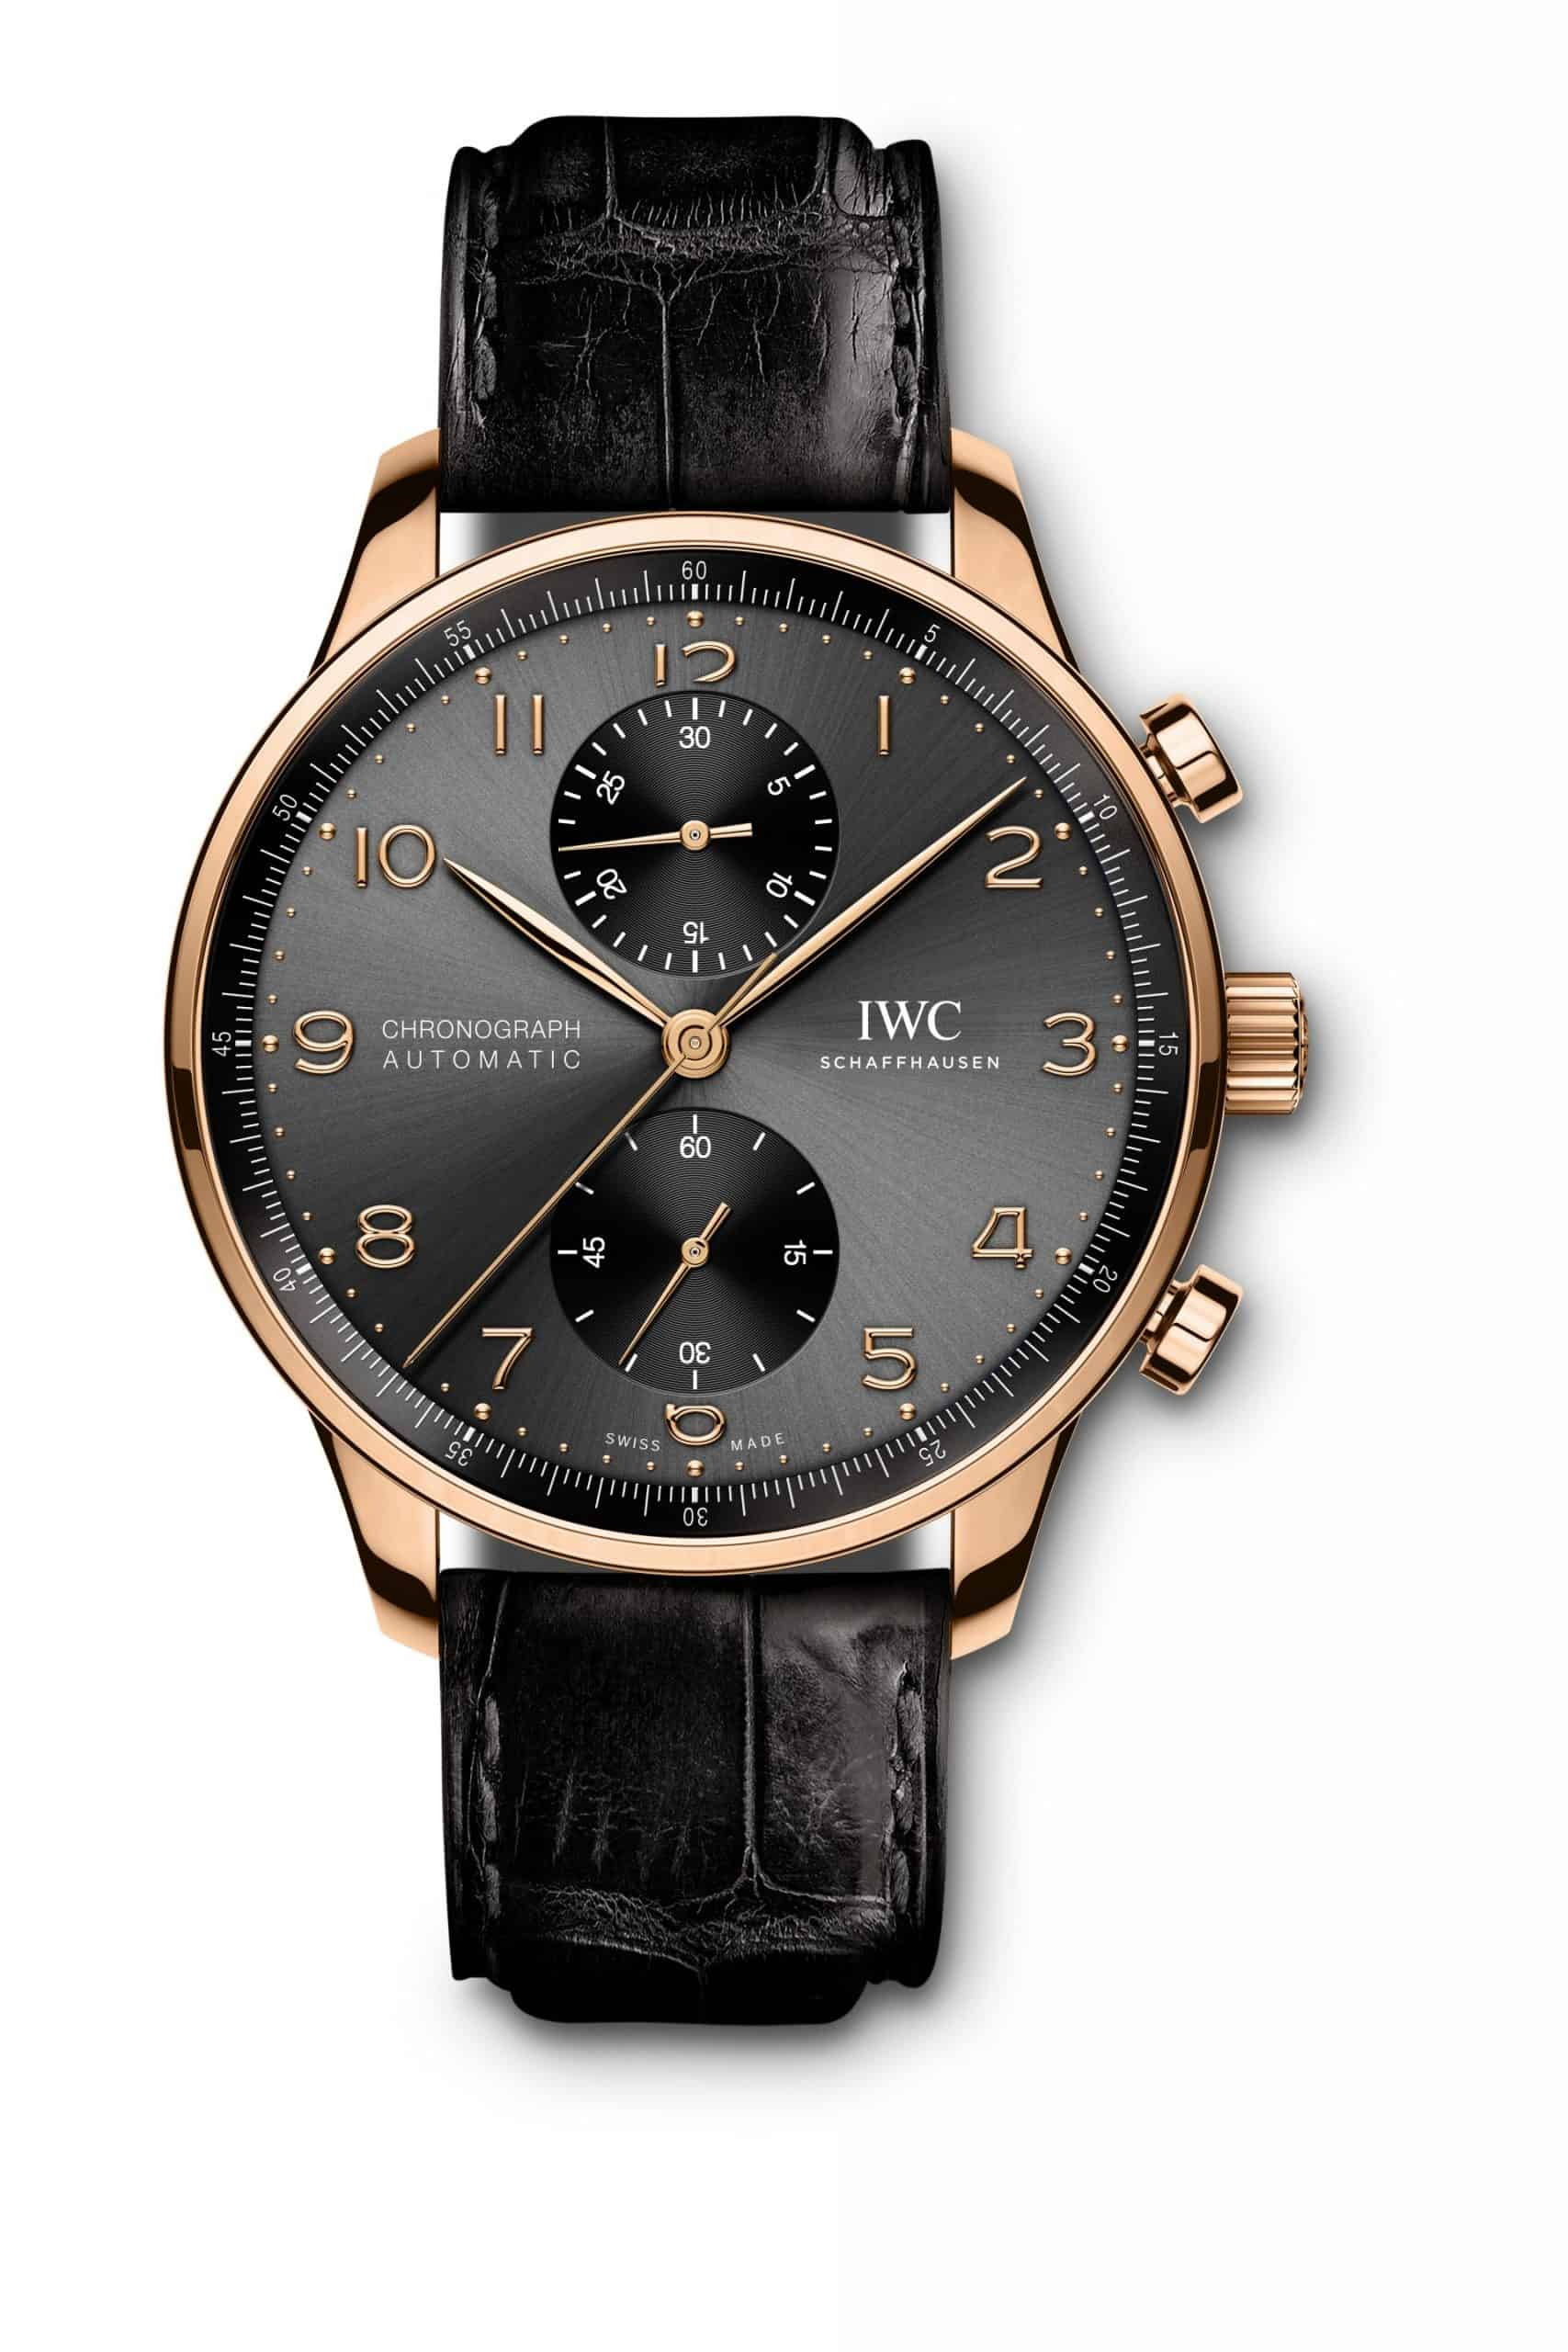 IWC Portugieser Chronograph Rotgold, Referenz IW371610